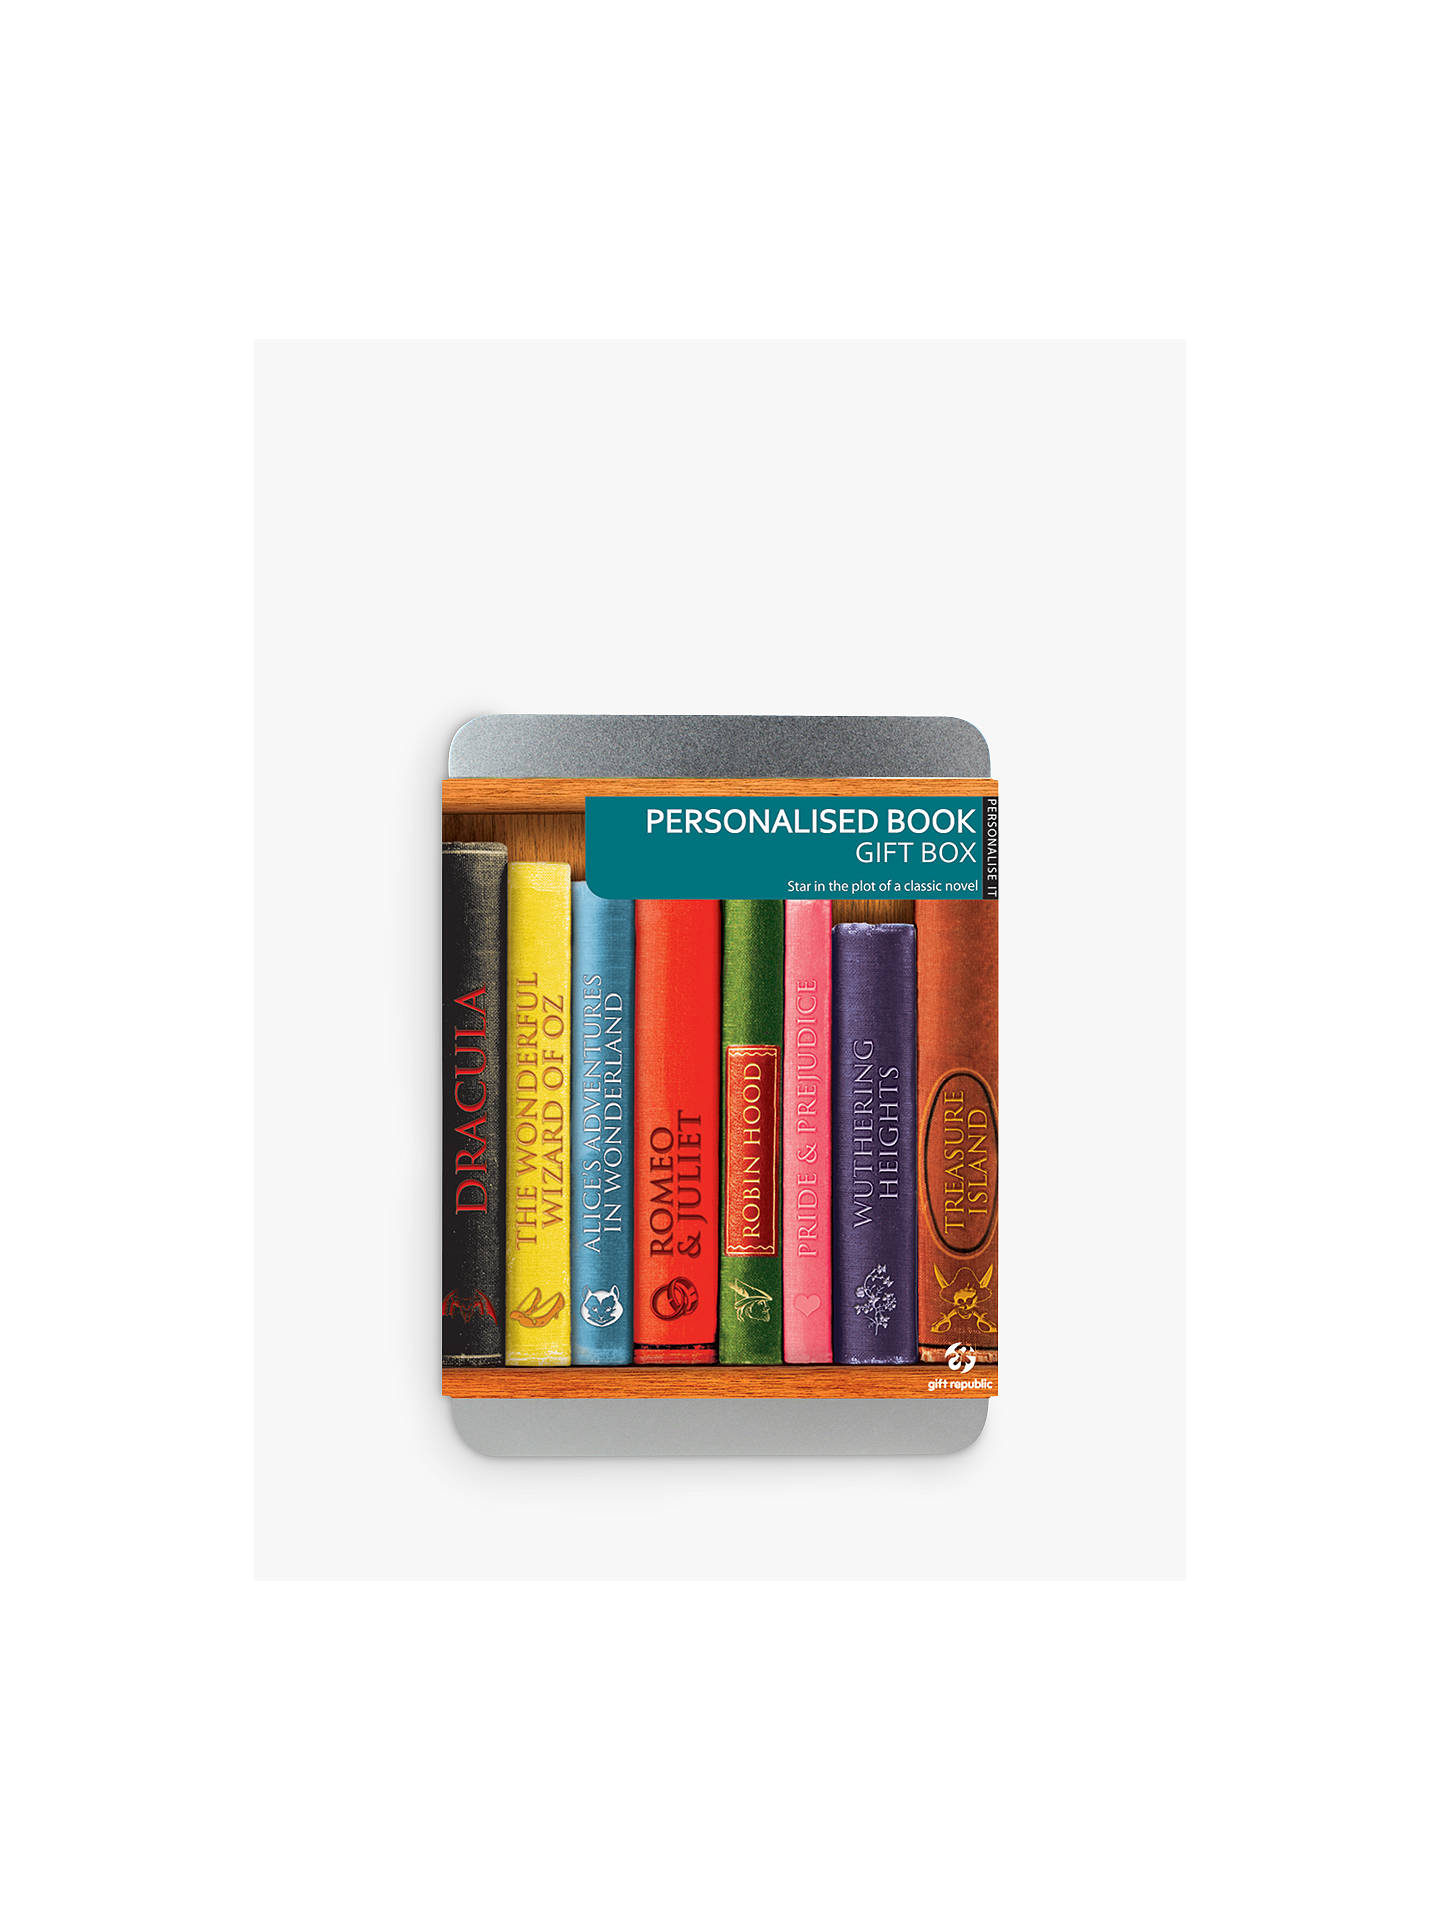 BuyPersonalised Book Gift Box Online at johnlewis.com